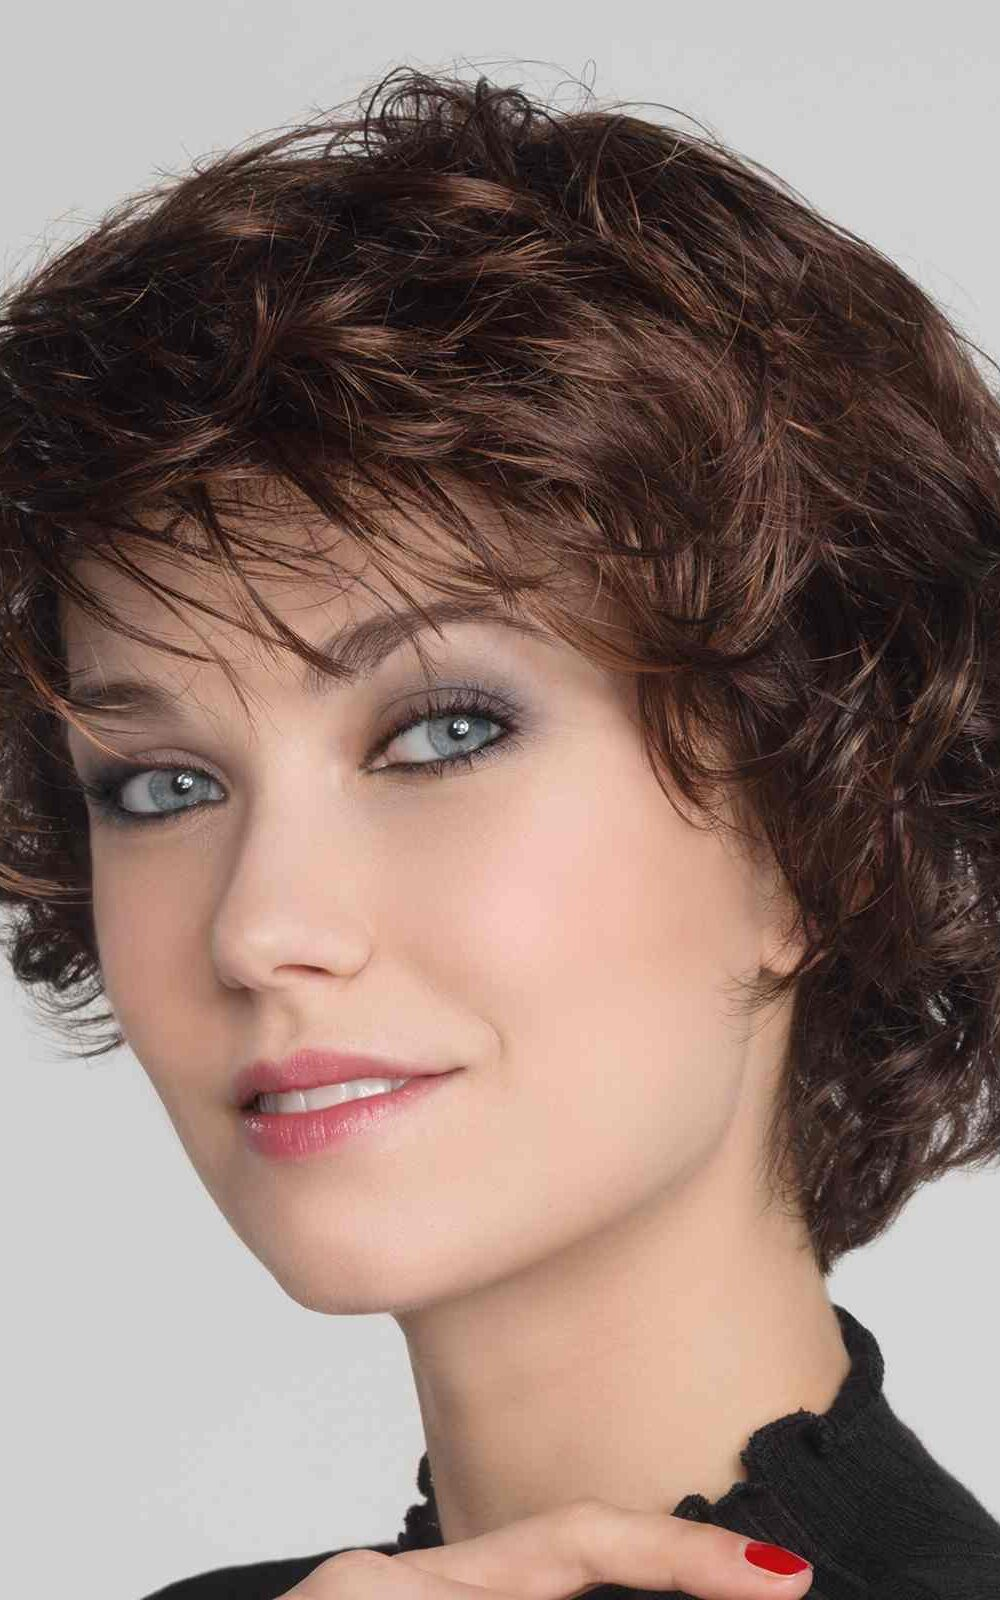 Alexis Deluxe | Monofilament Crown to create the impression of a natural scalp area | Elly-K.com.au